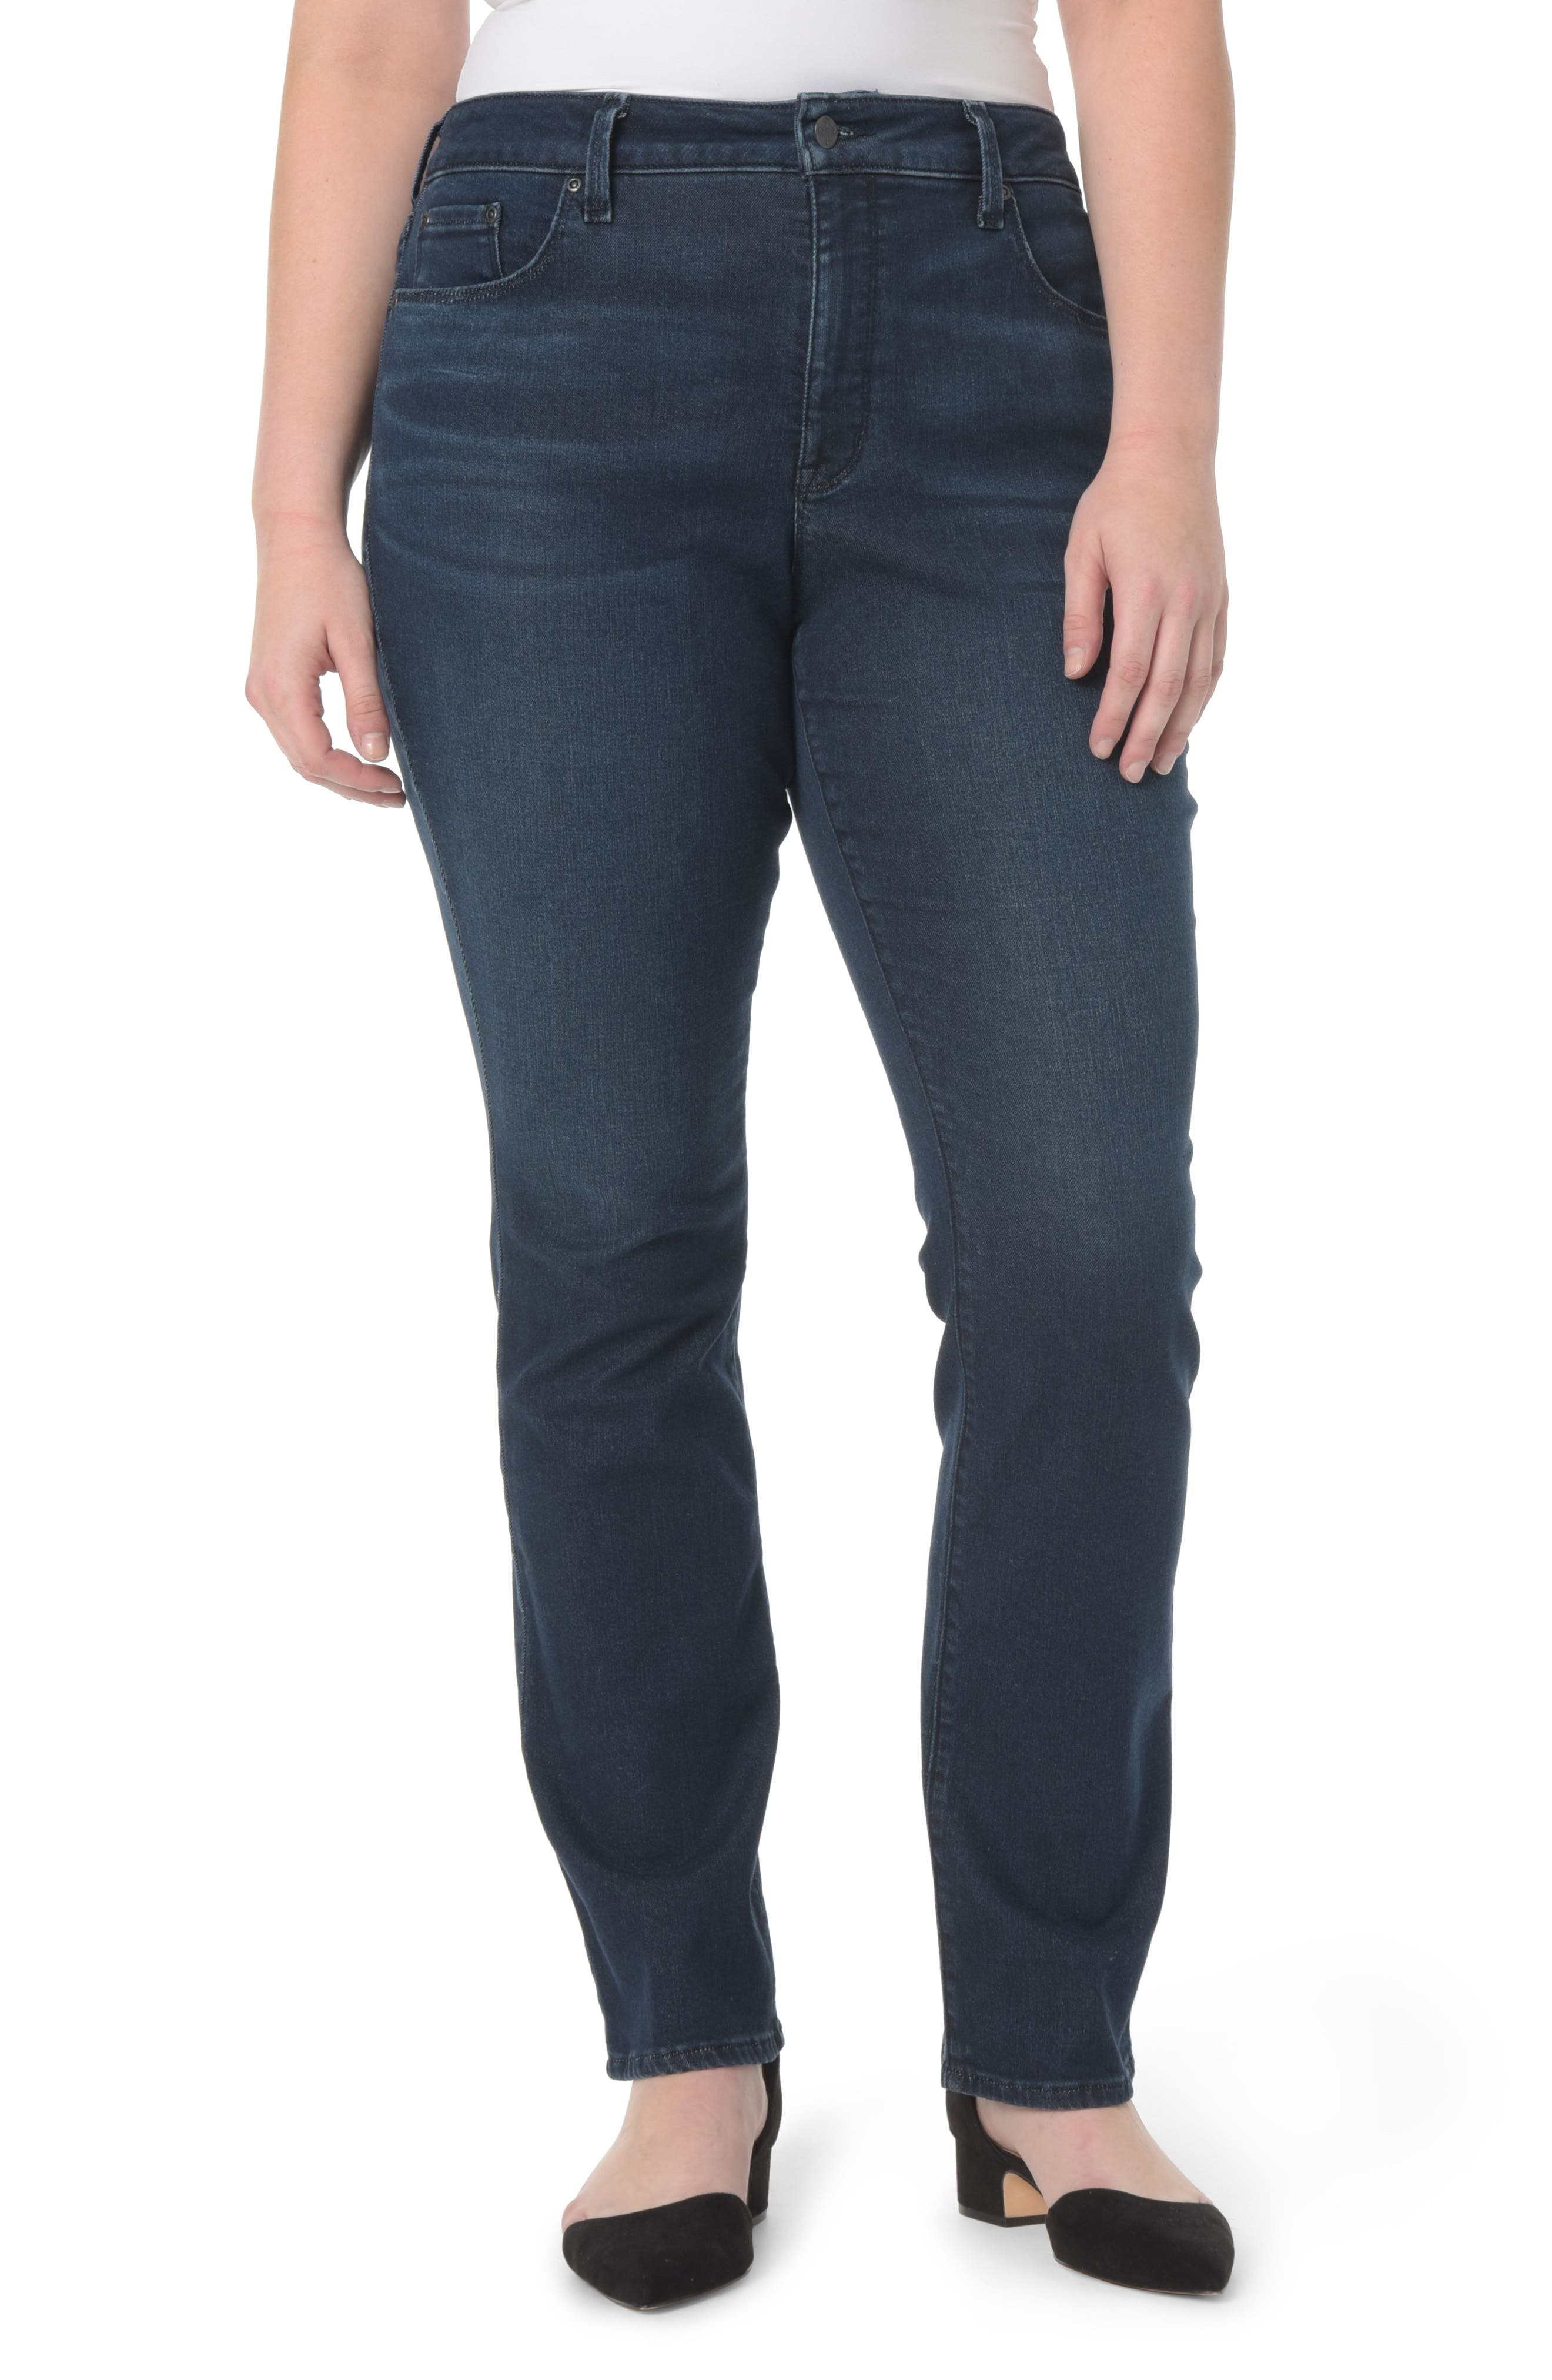 Marilyn Stretch Straight Leg Jeans,                             Main thumbnail 1, color,                             402